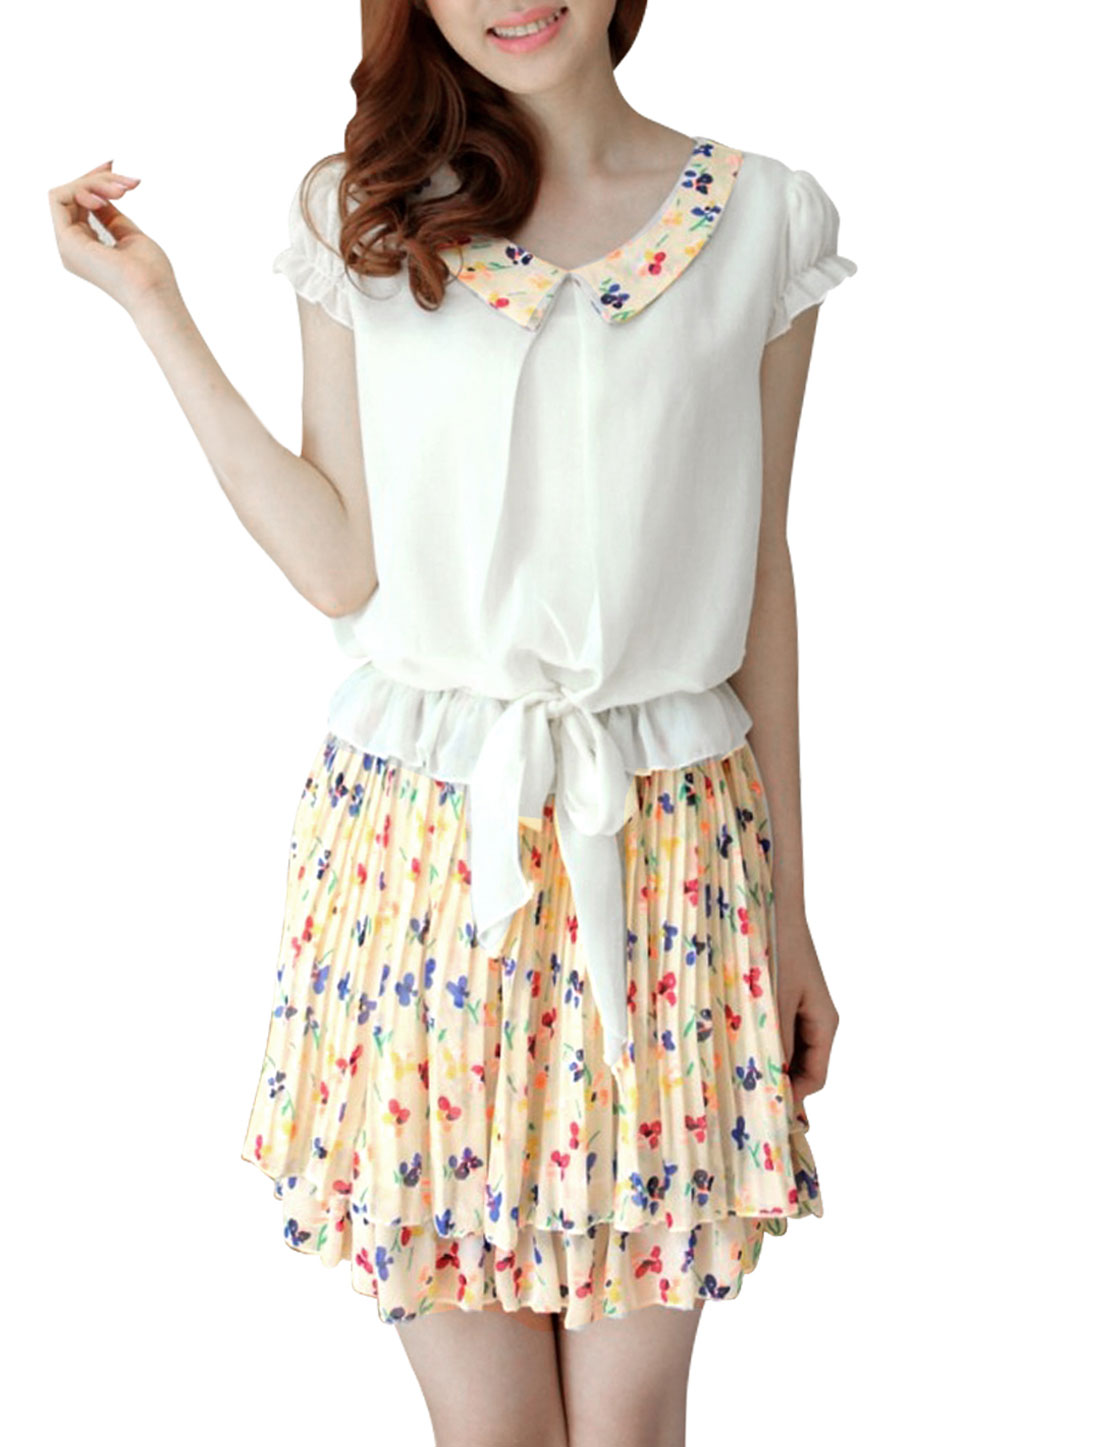 Woman NEW Peter Pan Collar Floral Prints Pleated White Mini Dress S